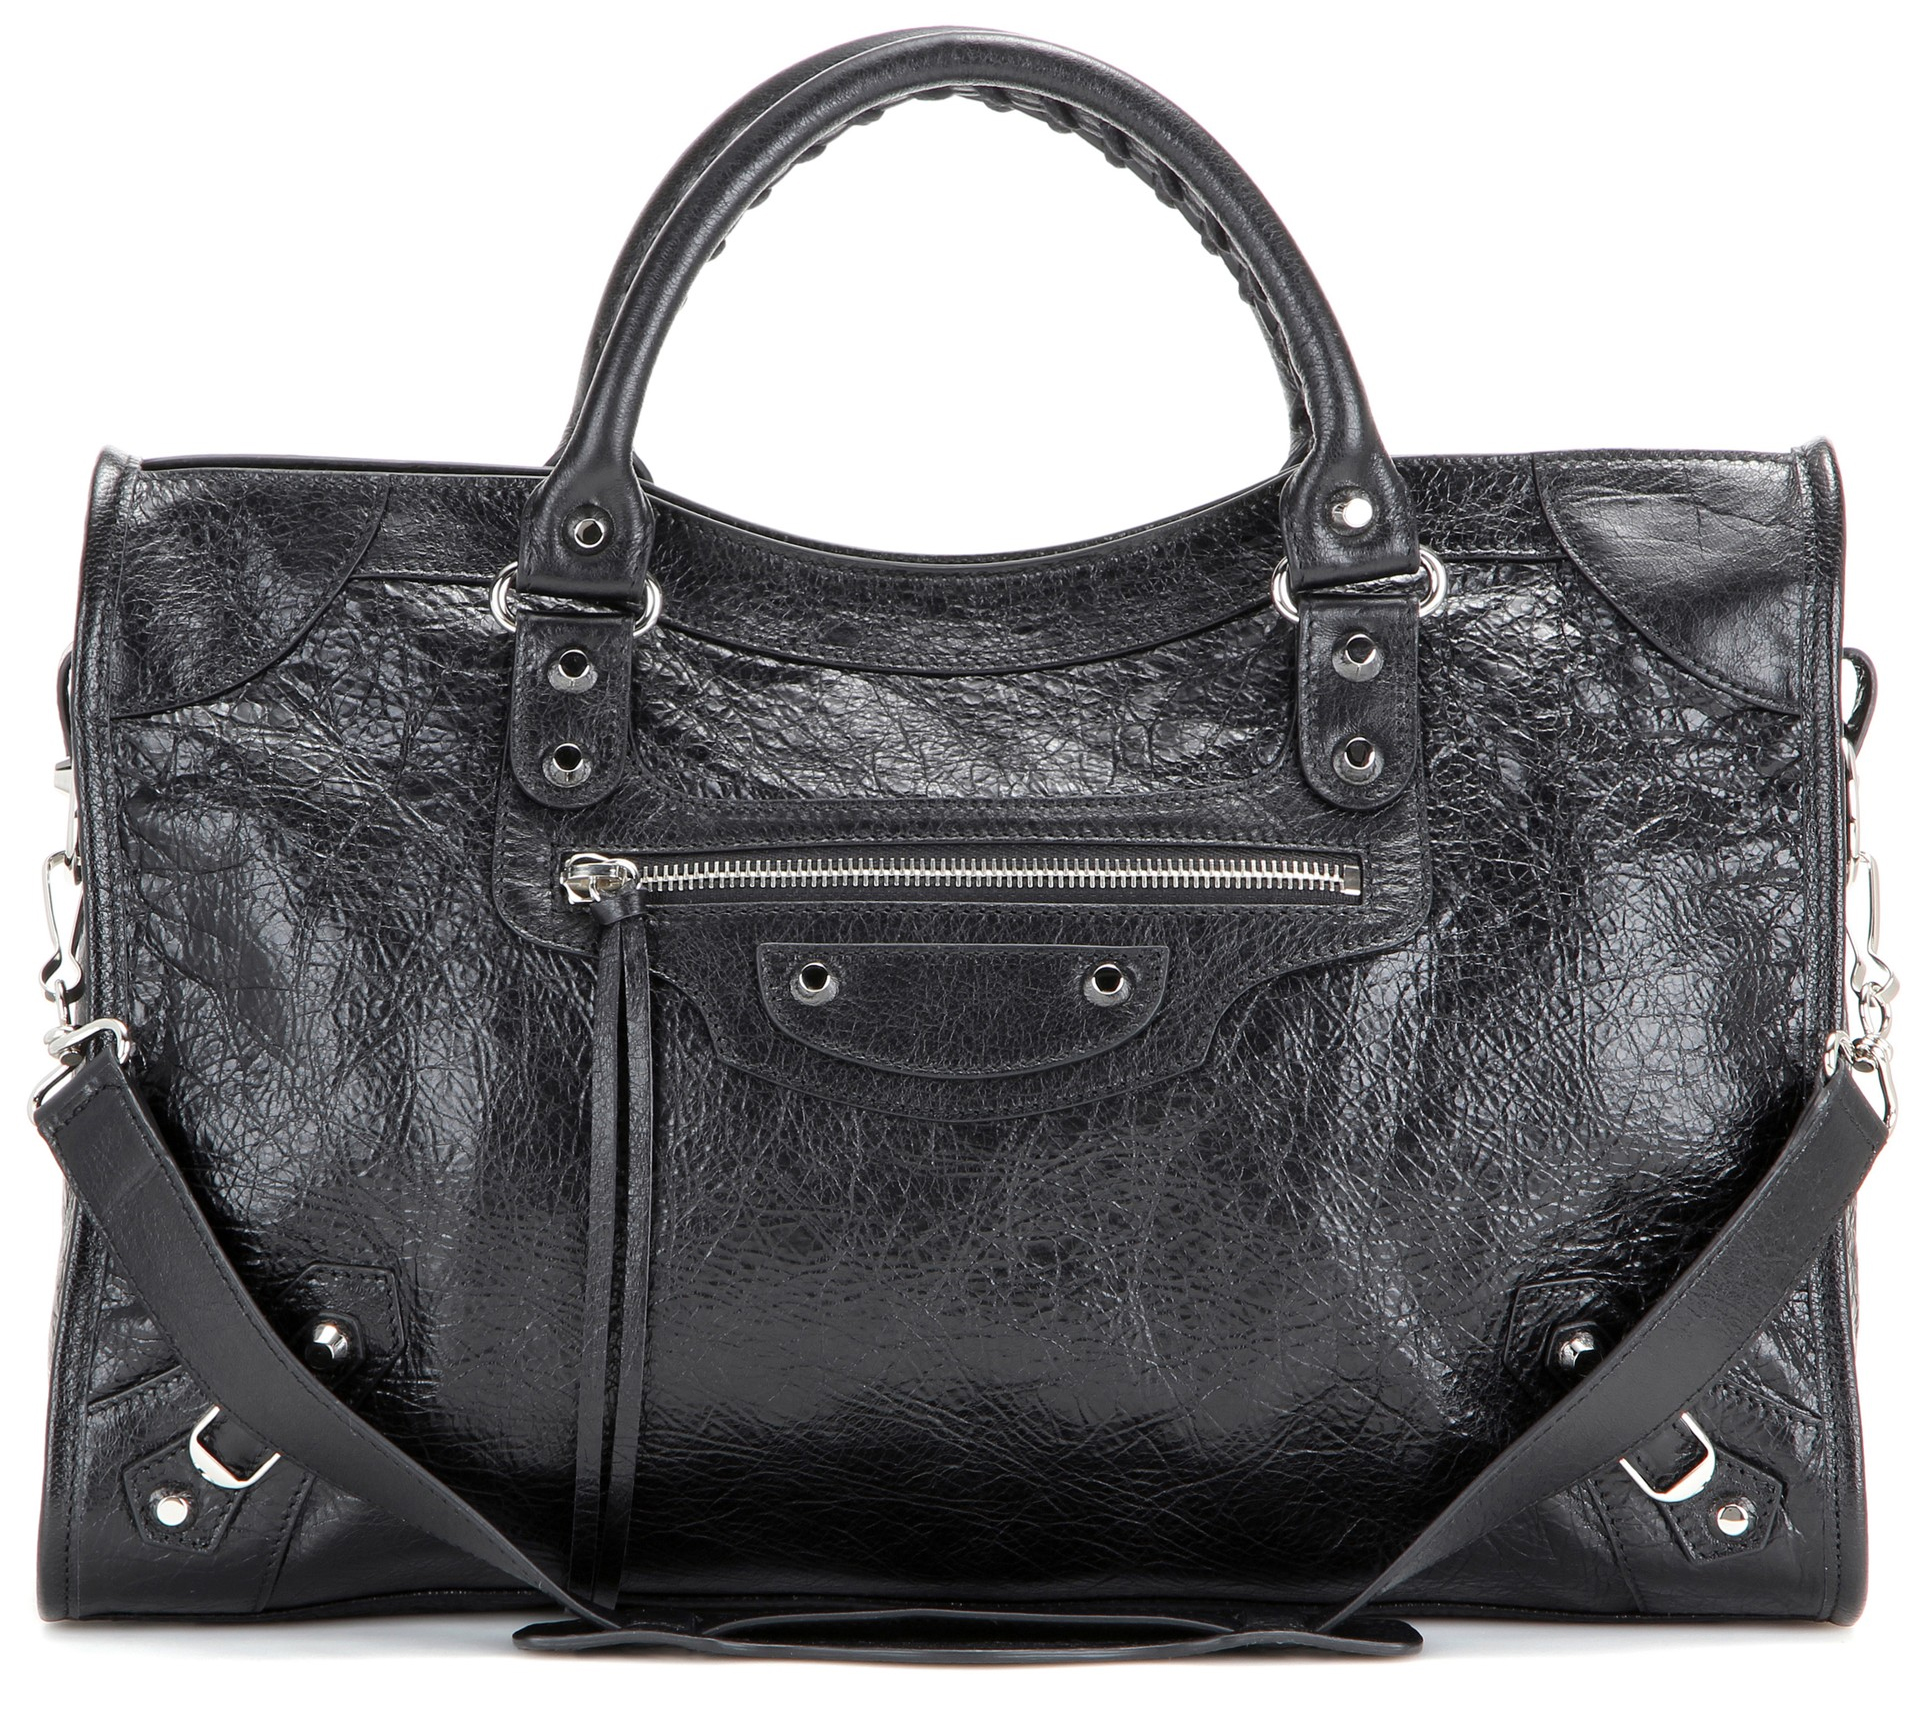 Balenciaga classic city leather tote bag